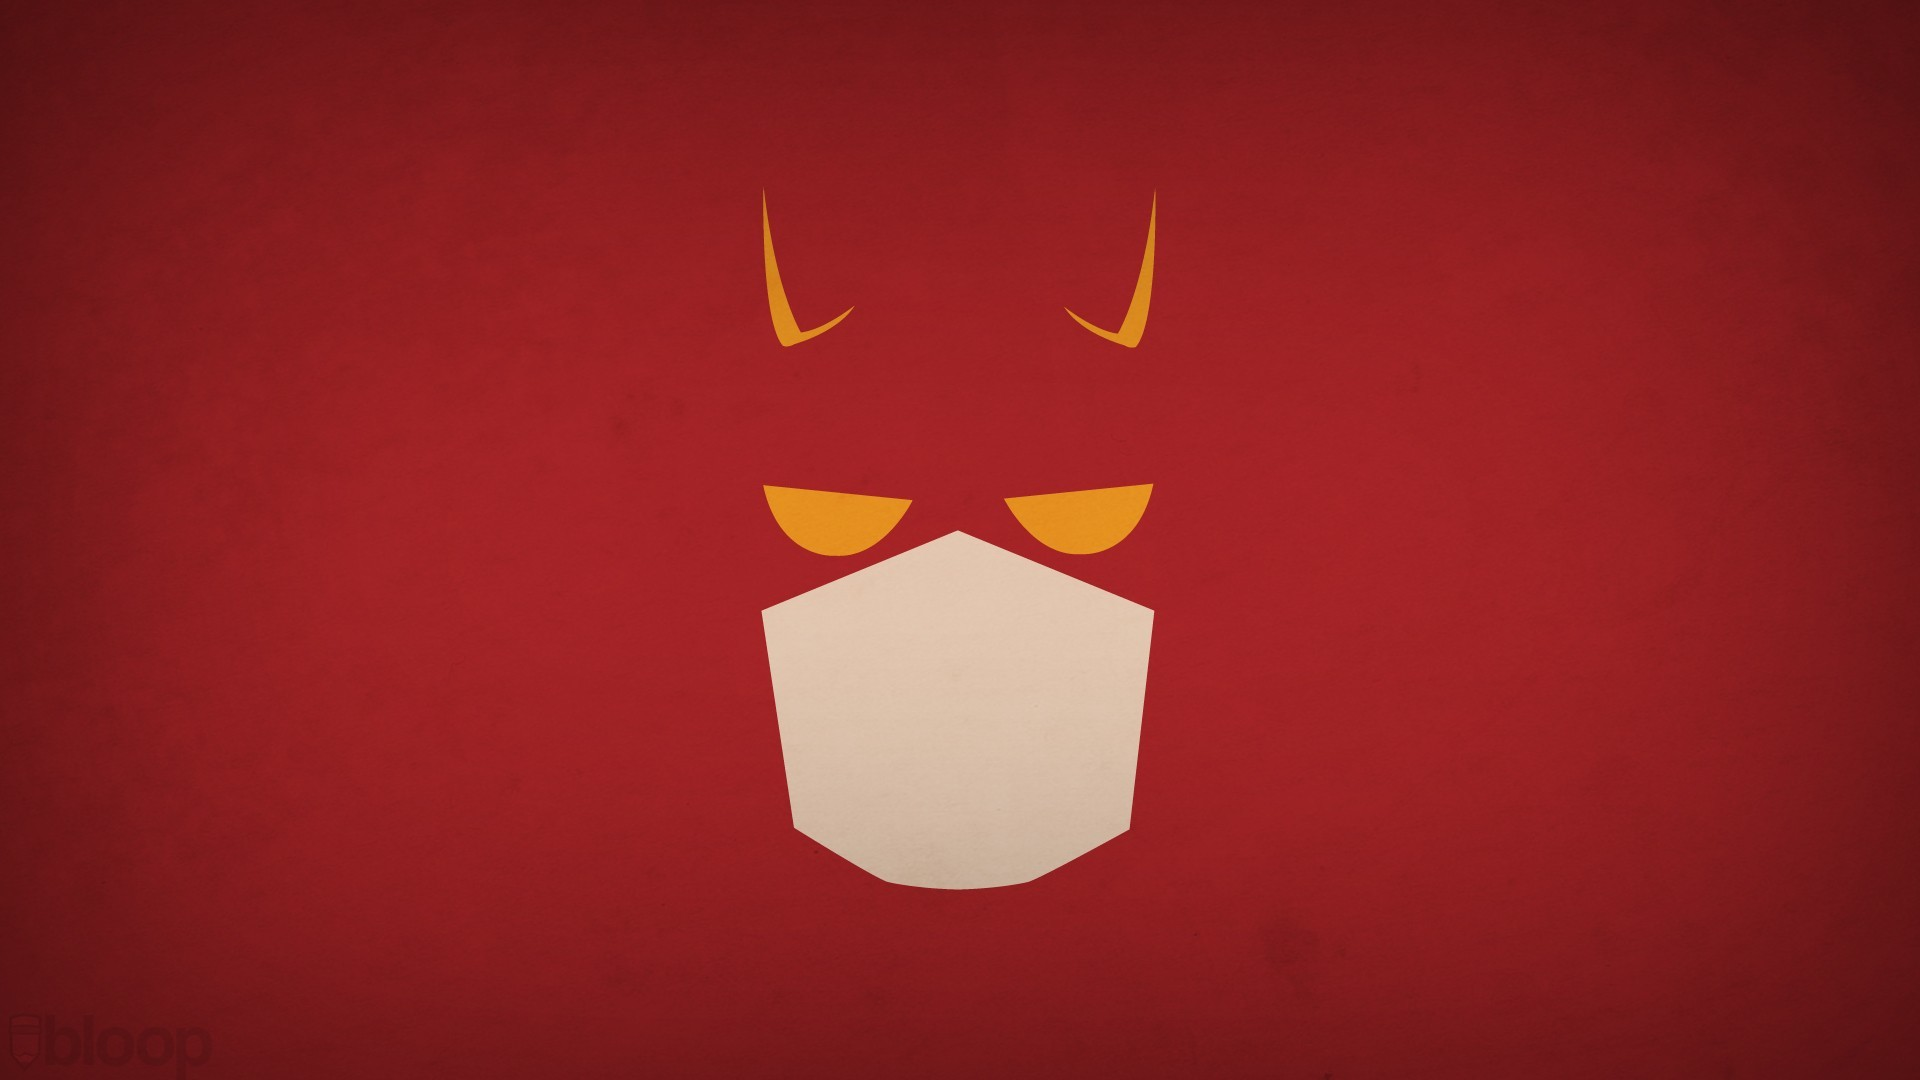 Minimalist Marvel Wallpaper (77+ images)